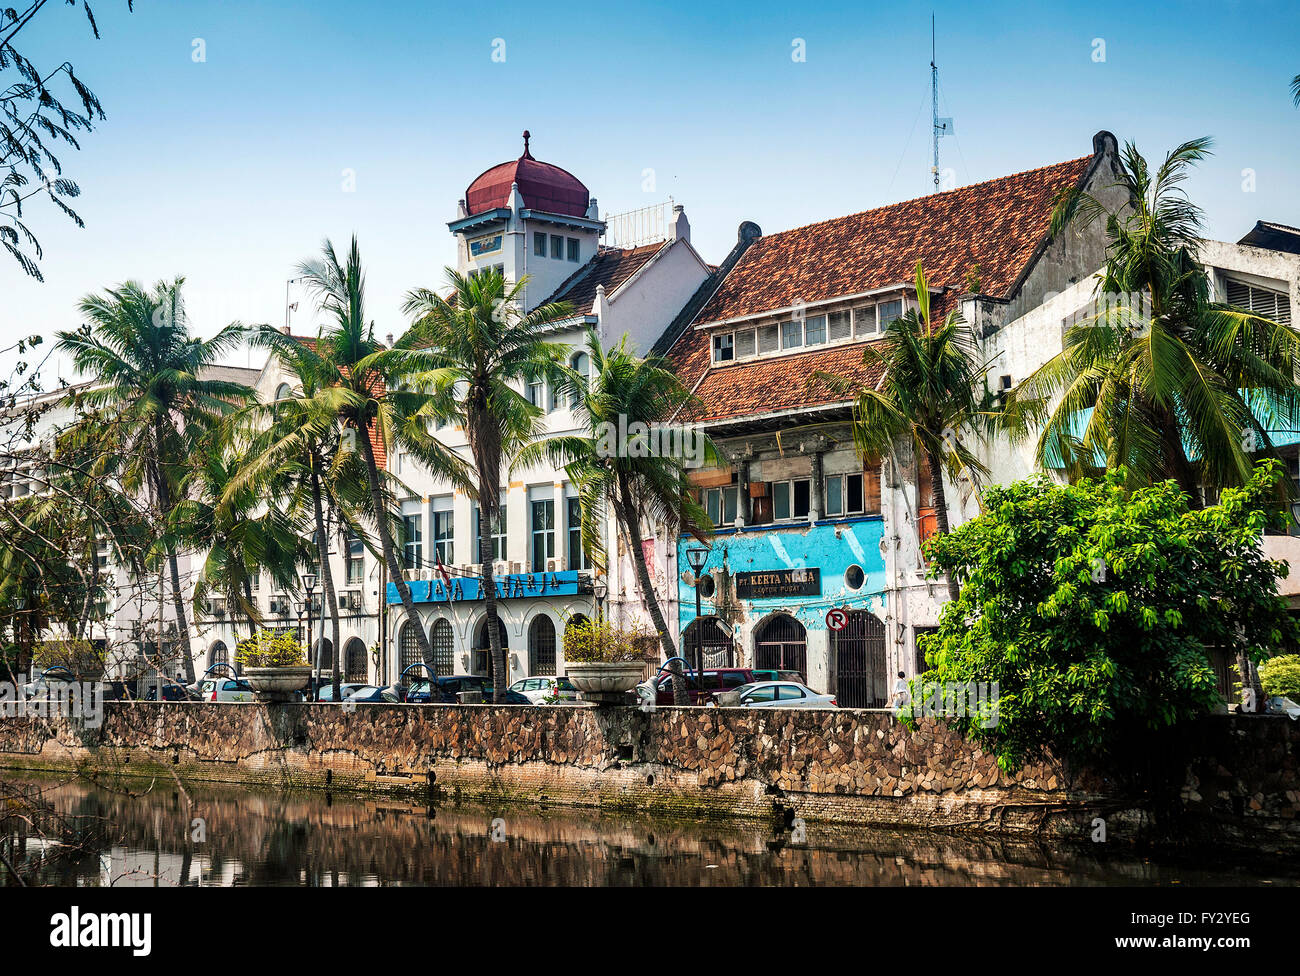 dutch colonial architecture buildings in old town of jakarta indonesia - Stock Image